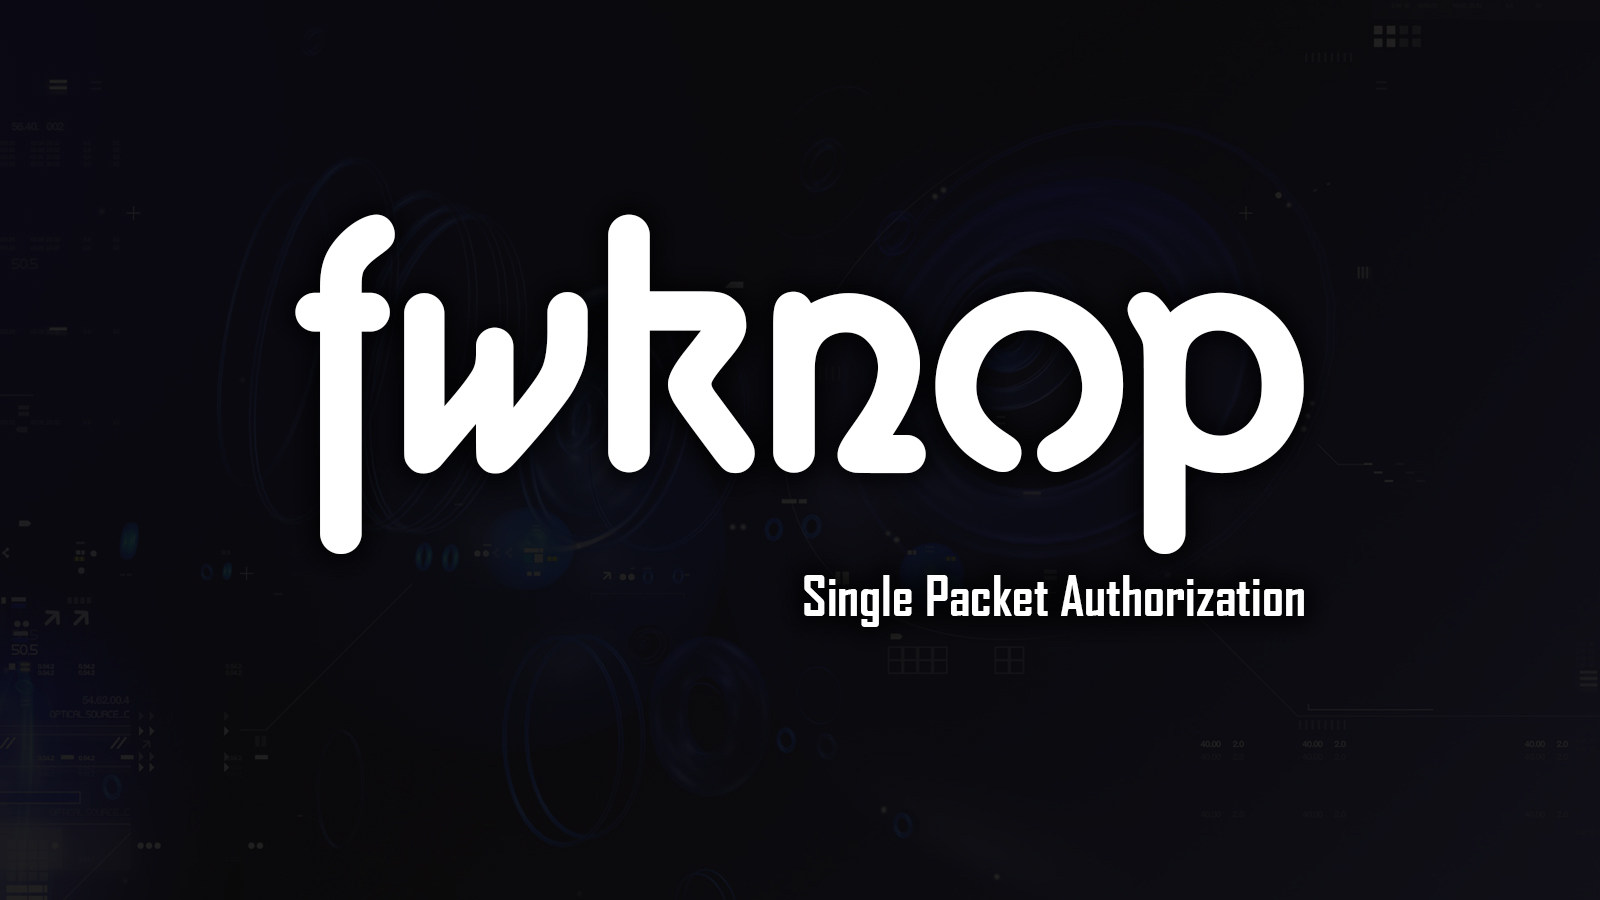 fwknop - Single Packet Authorization > Port Knocking